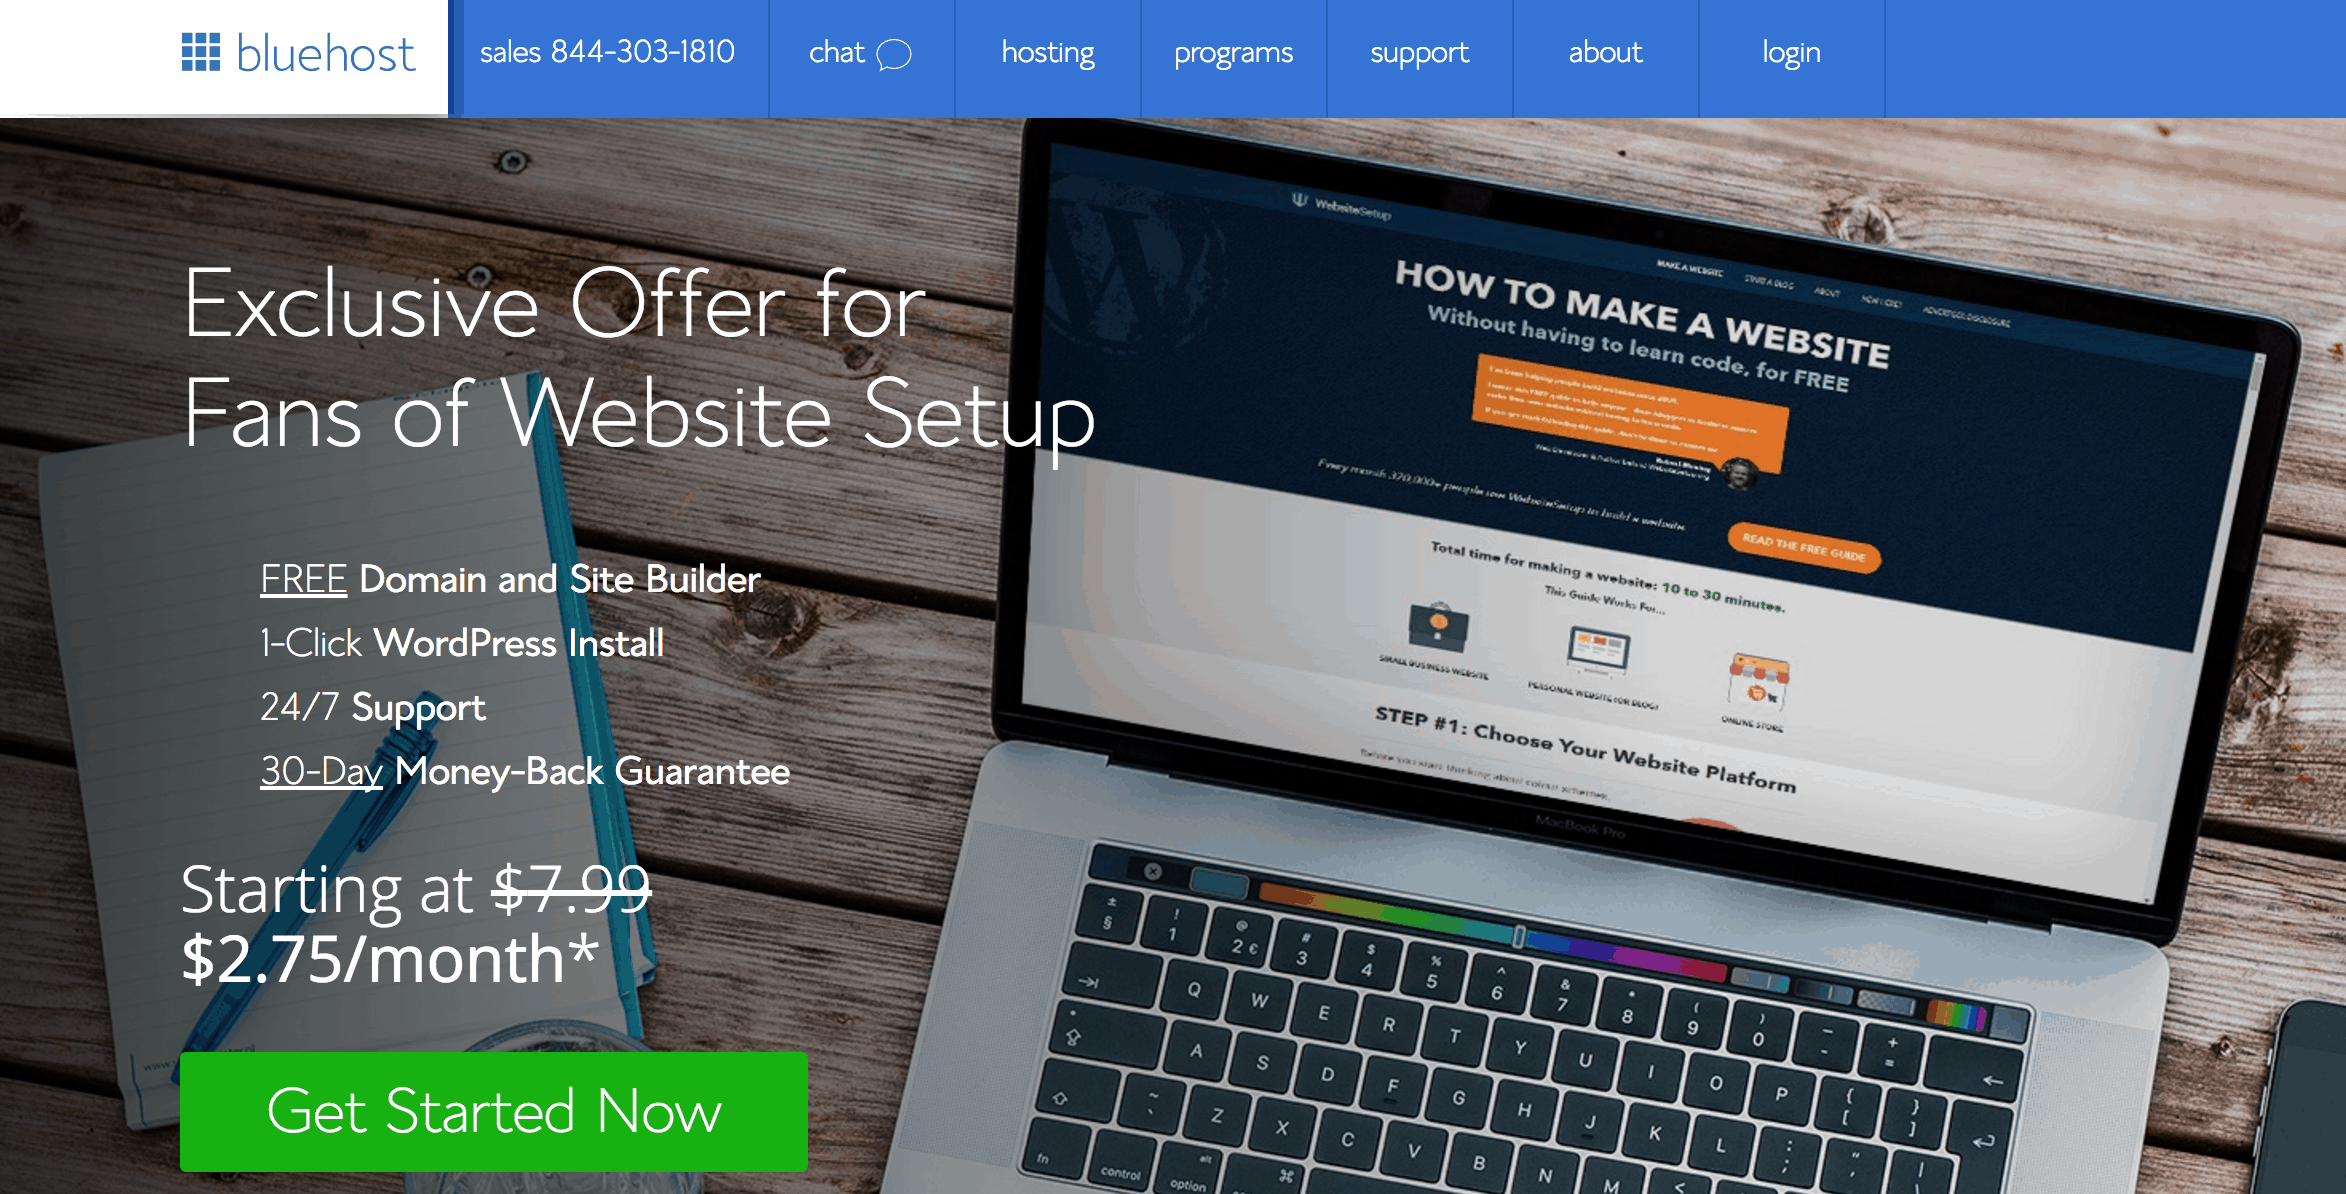 How to make a website step by step guide for beginners 2018 web hosting landing page solutioingenieria Gallery